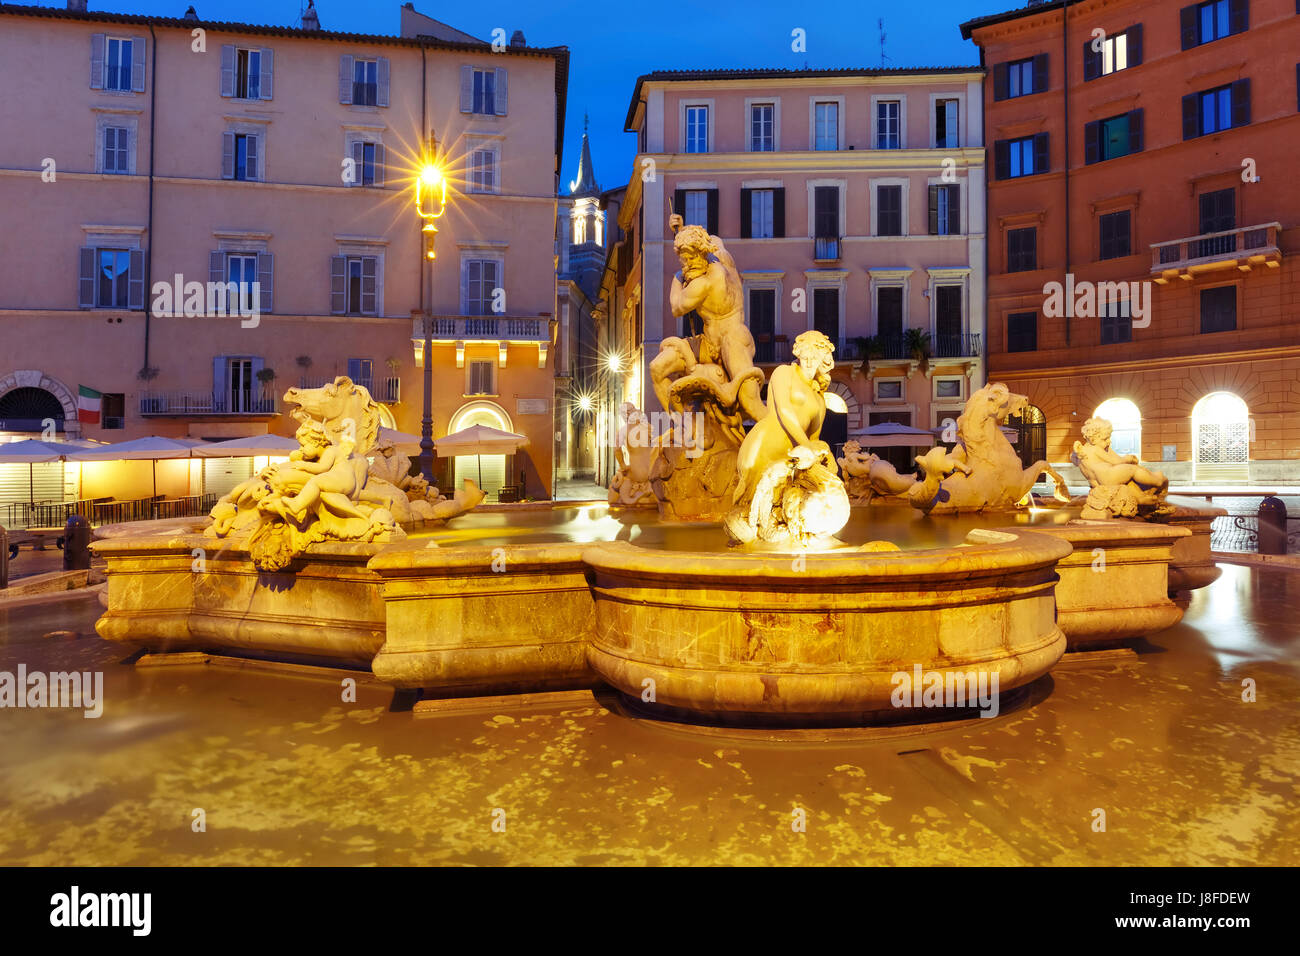 Fountain of Neptune on Piazza Navona, Rome, Italy. - Stock Image